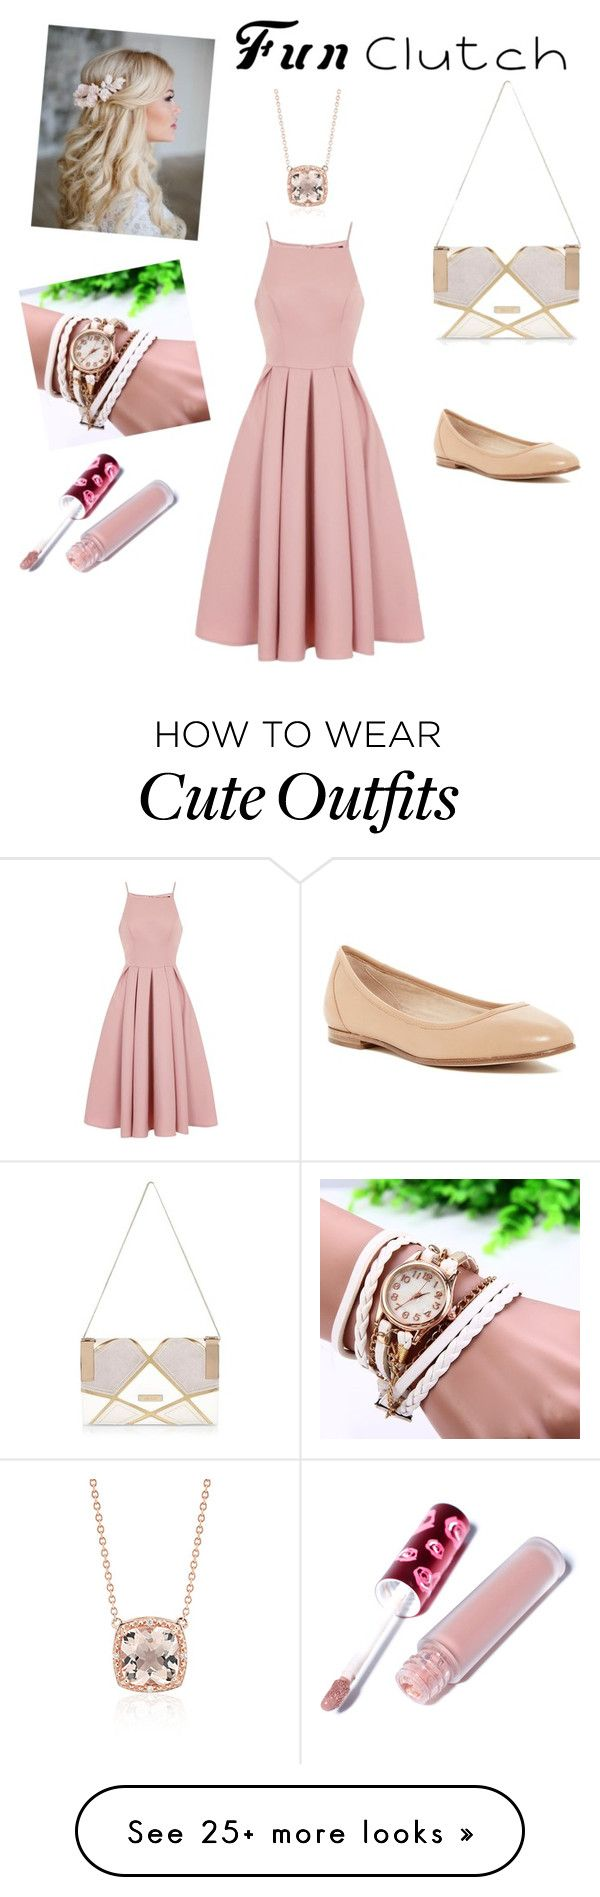 """blush pink outfit"" by apriffle on Polyvore featuring River Island, Chi Chi, Via Spiga, Lime Crime and Blue Nile"